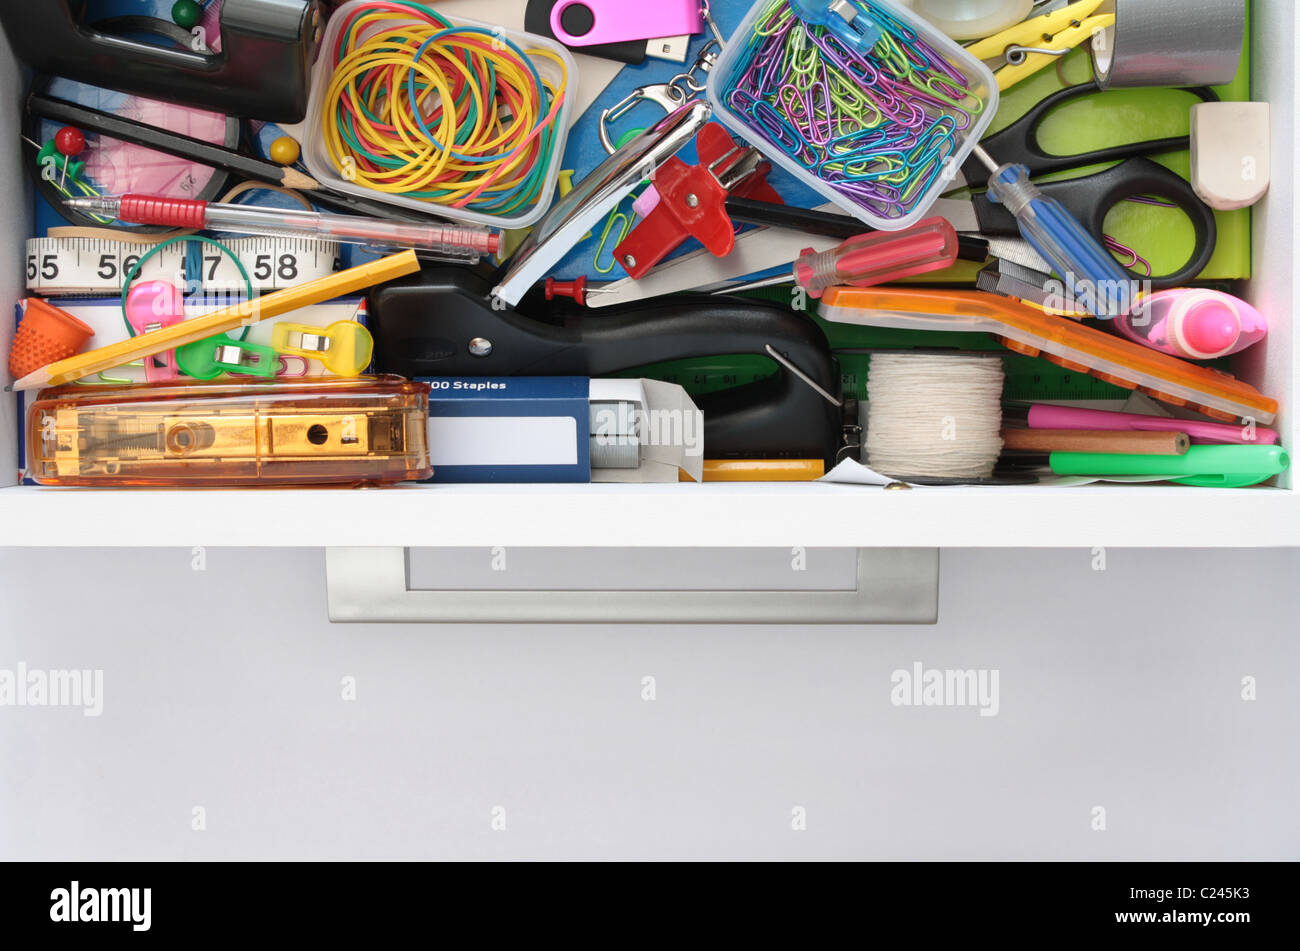 Secrets of the Stationery Drawer Exposed - Stock Image